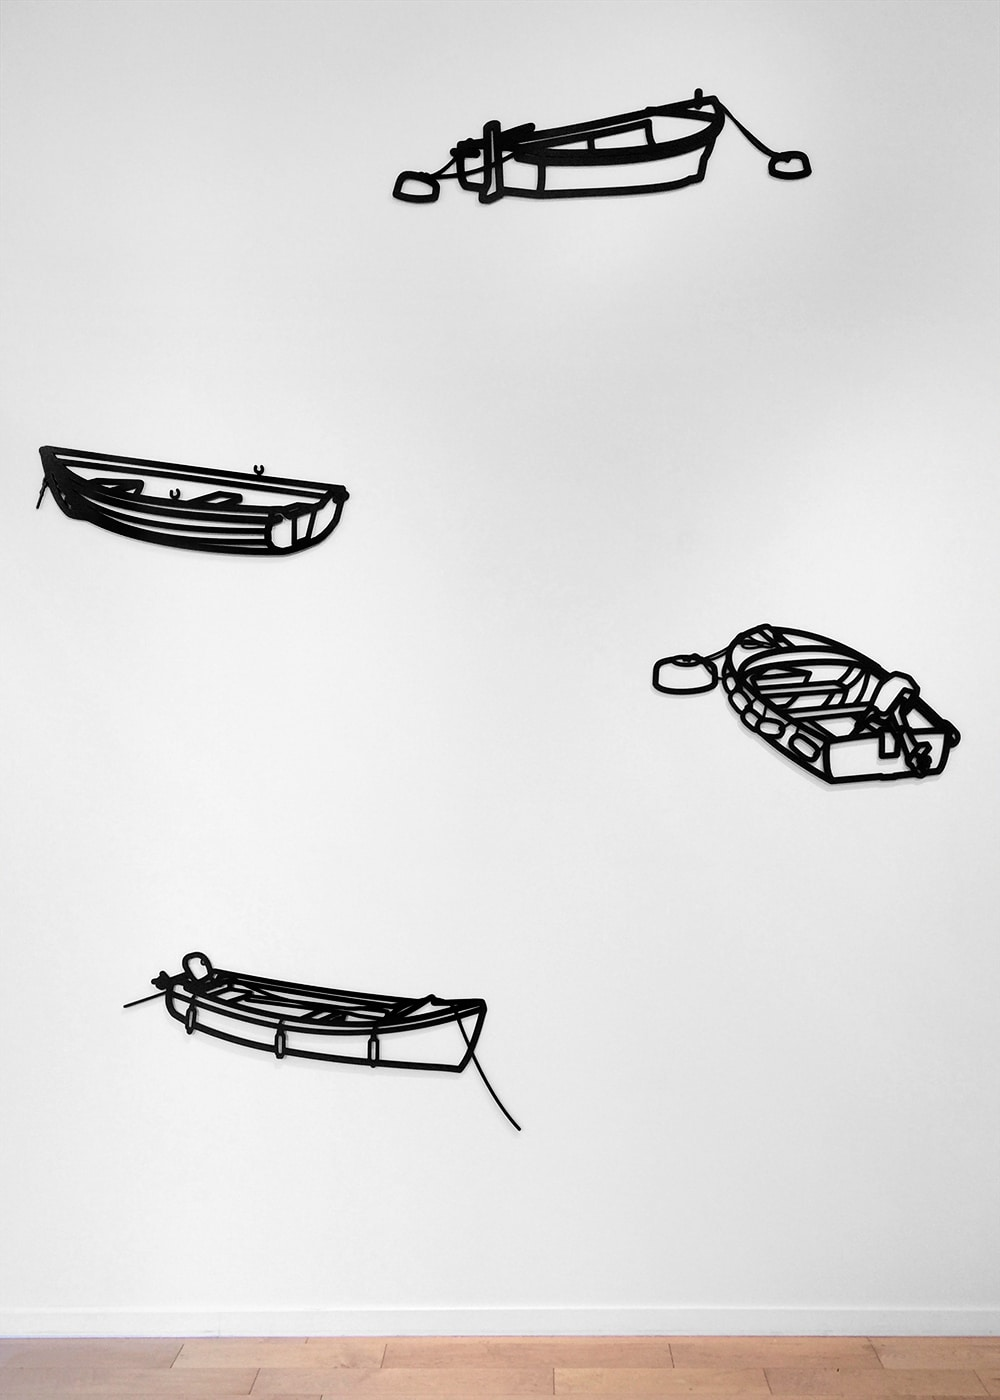 Julian Opie Wall Sculptures of Boats